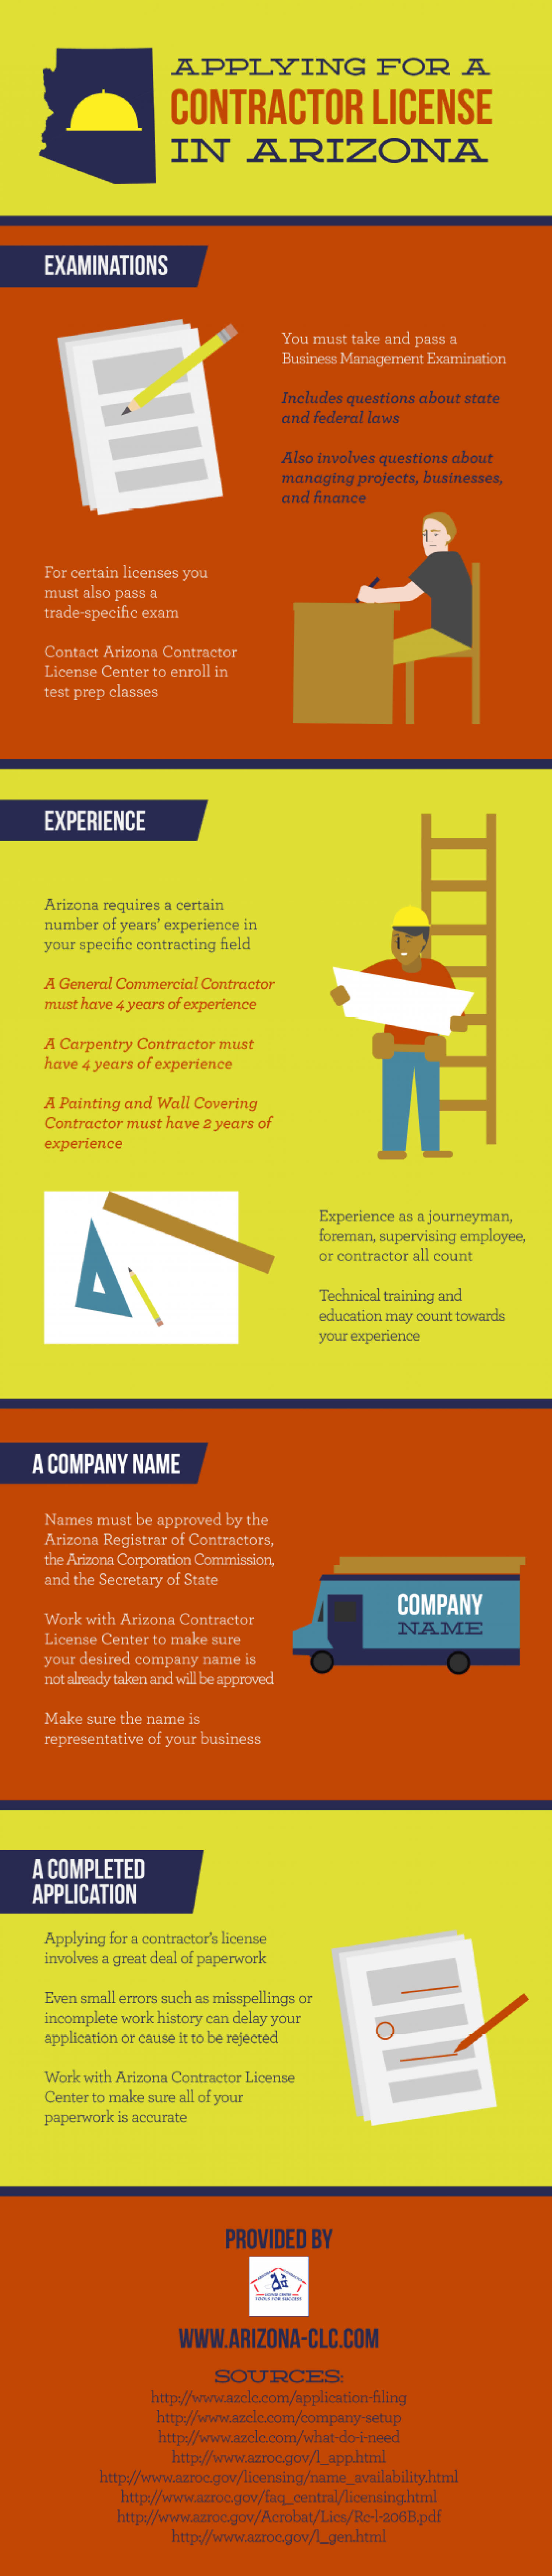 Applying for a Contractor License in Arizona  Infographic